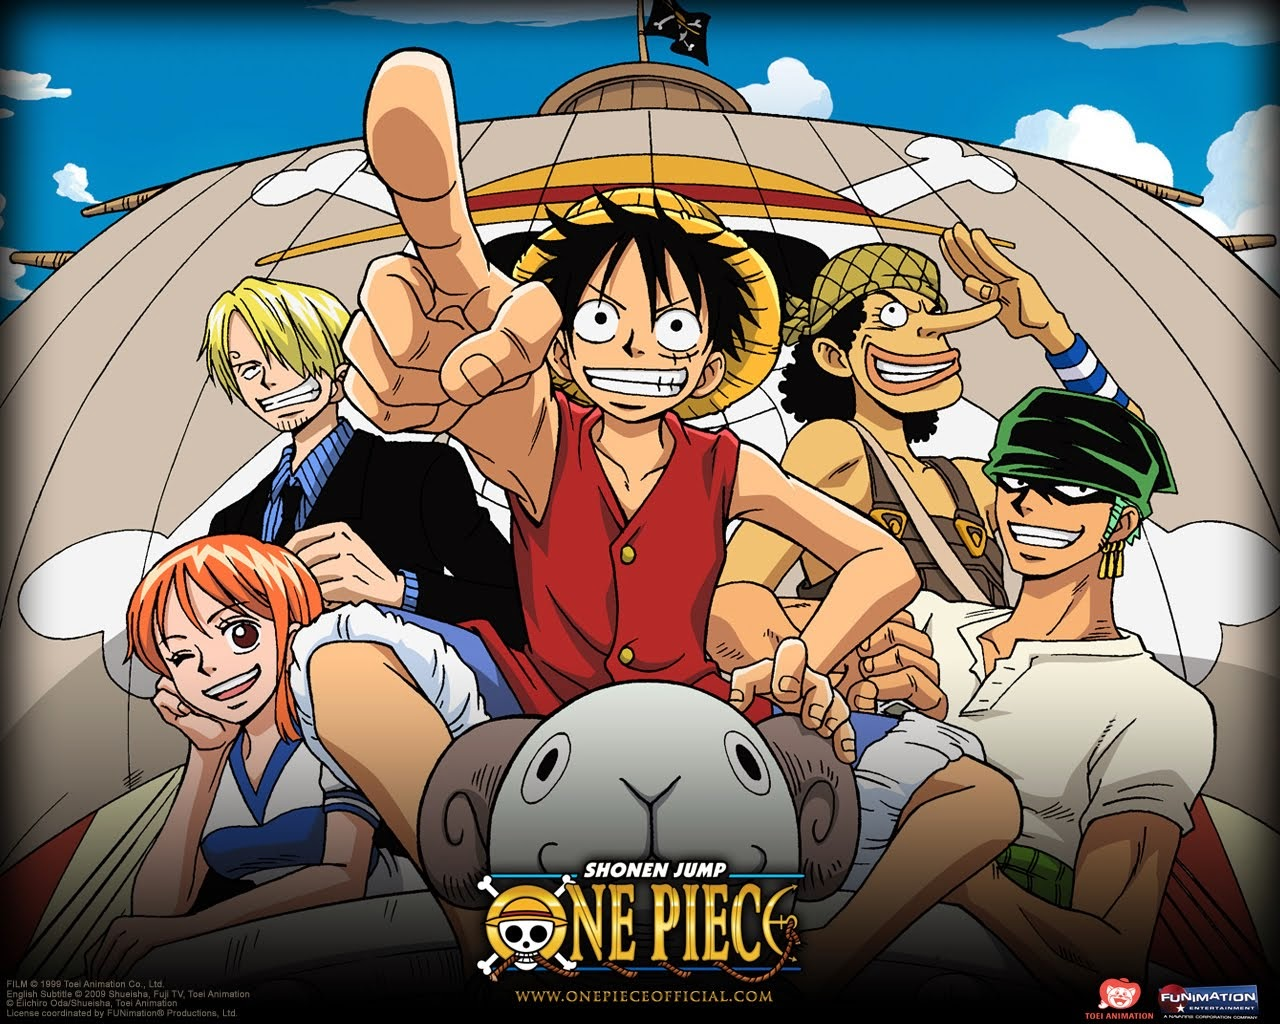 One Piece Season 1 (1999)